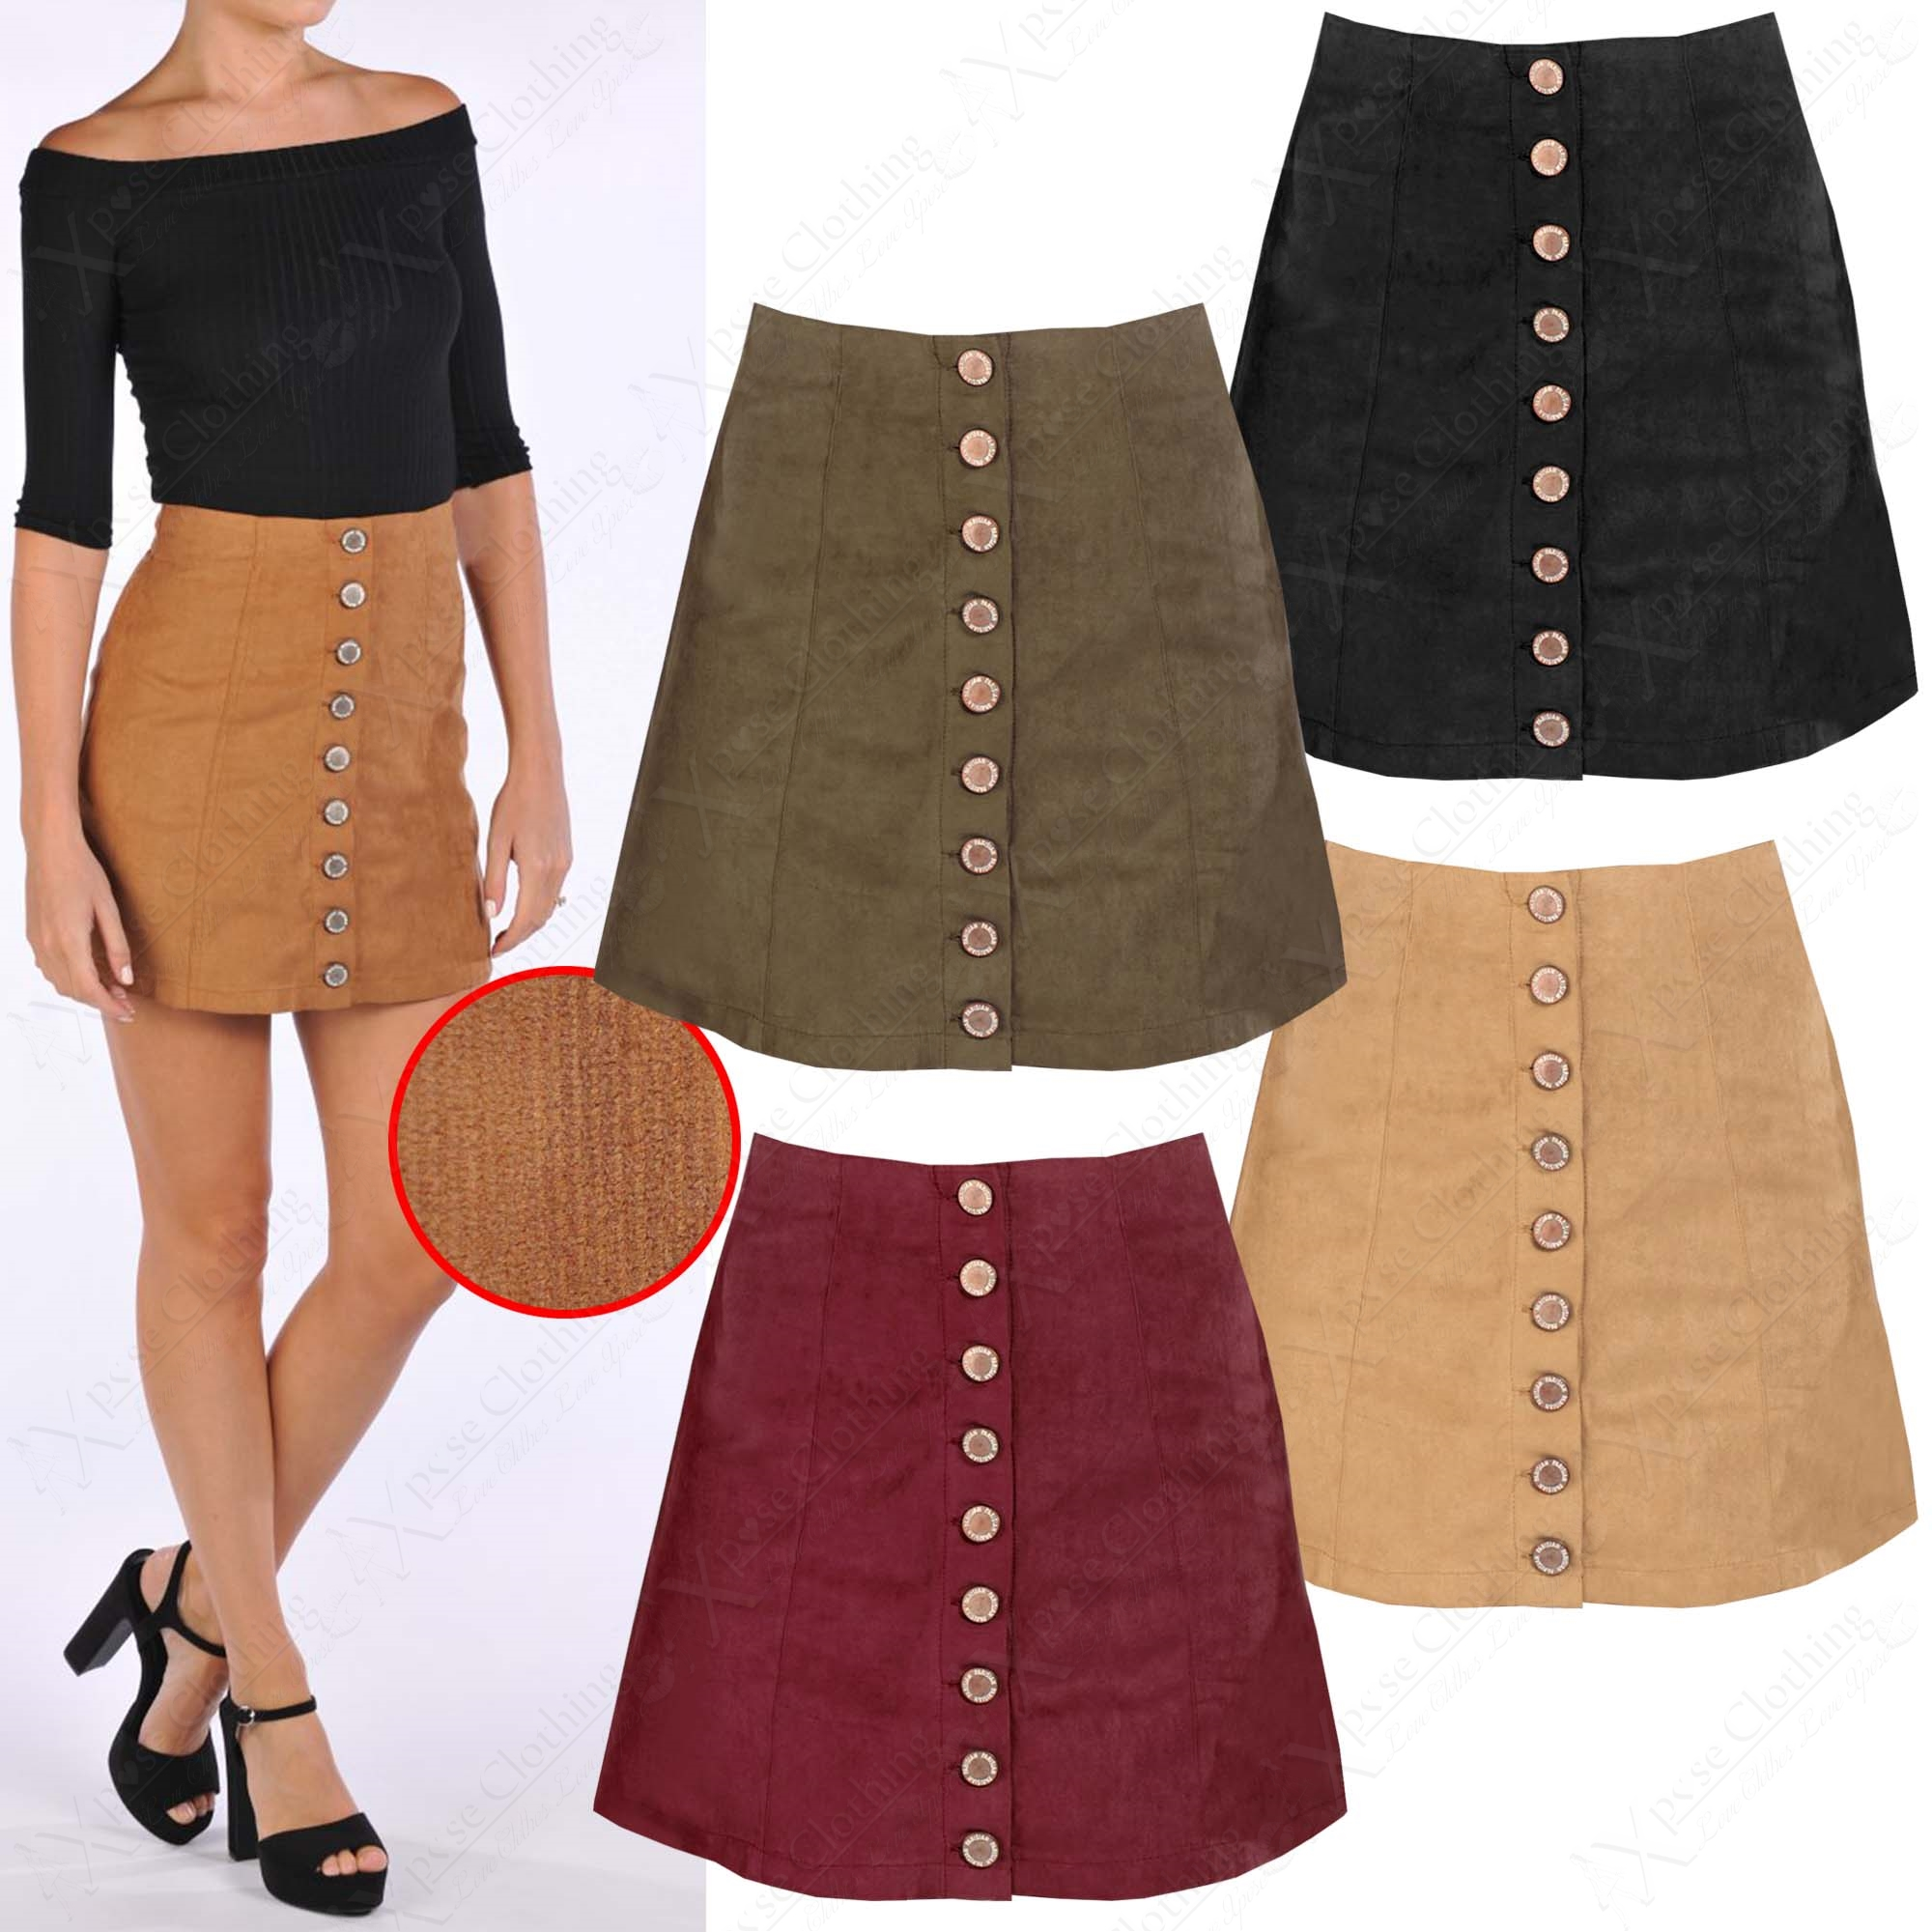 NEW WOMENS RIB CORD A LINE MINI SKIRT BUTTON FRONT FAUX SUEDE LOOK ...